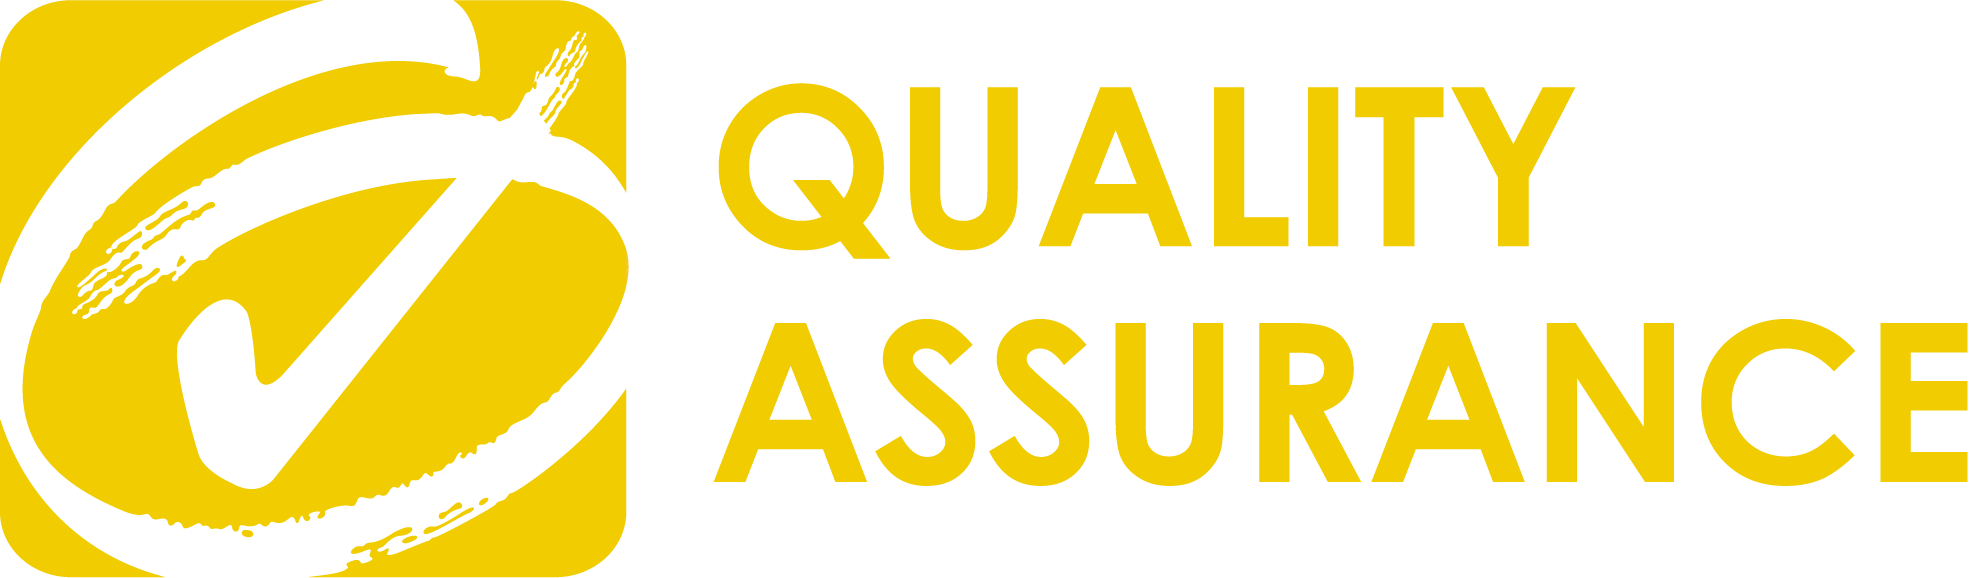 Image result for quality assurance office